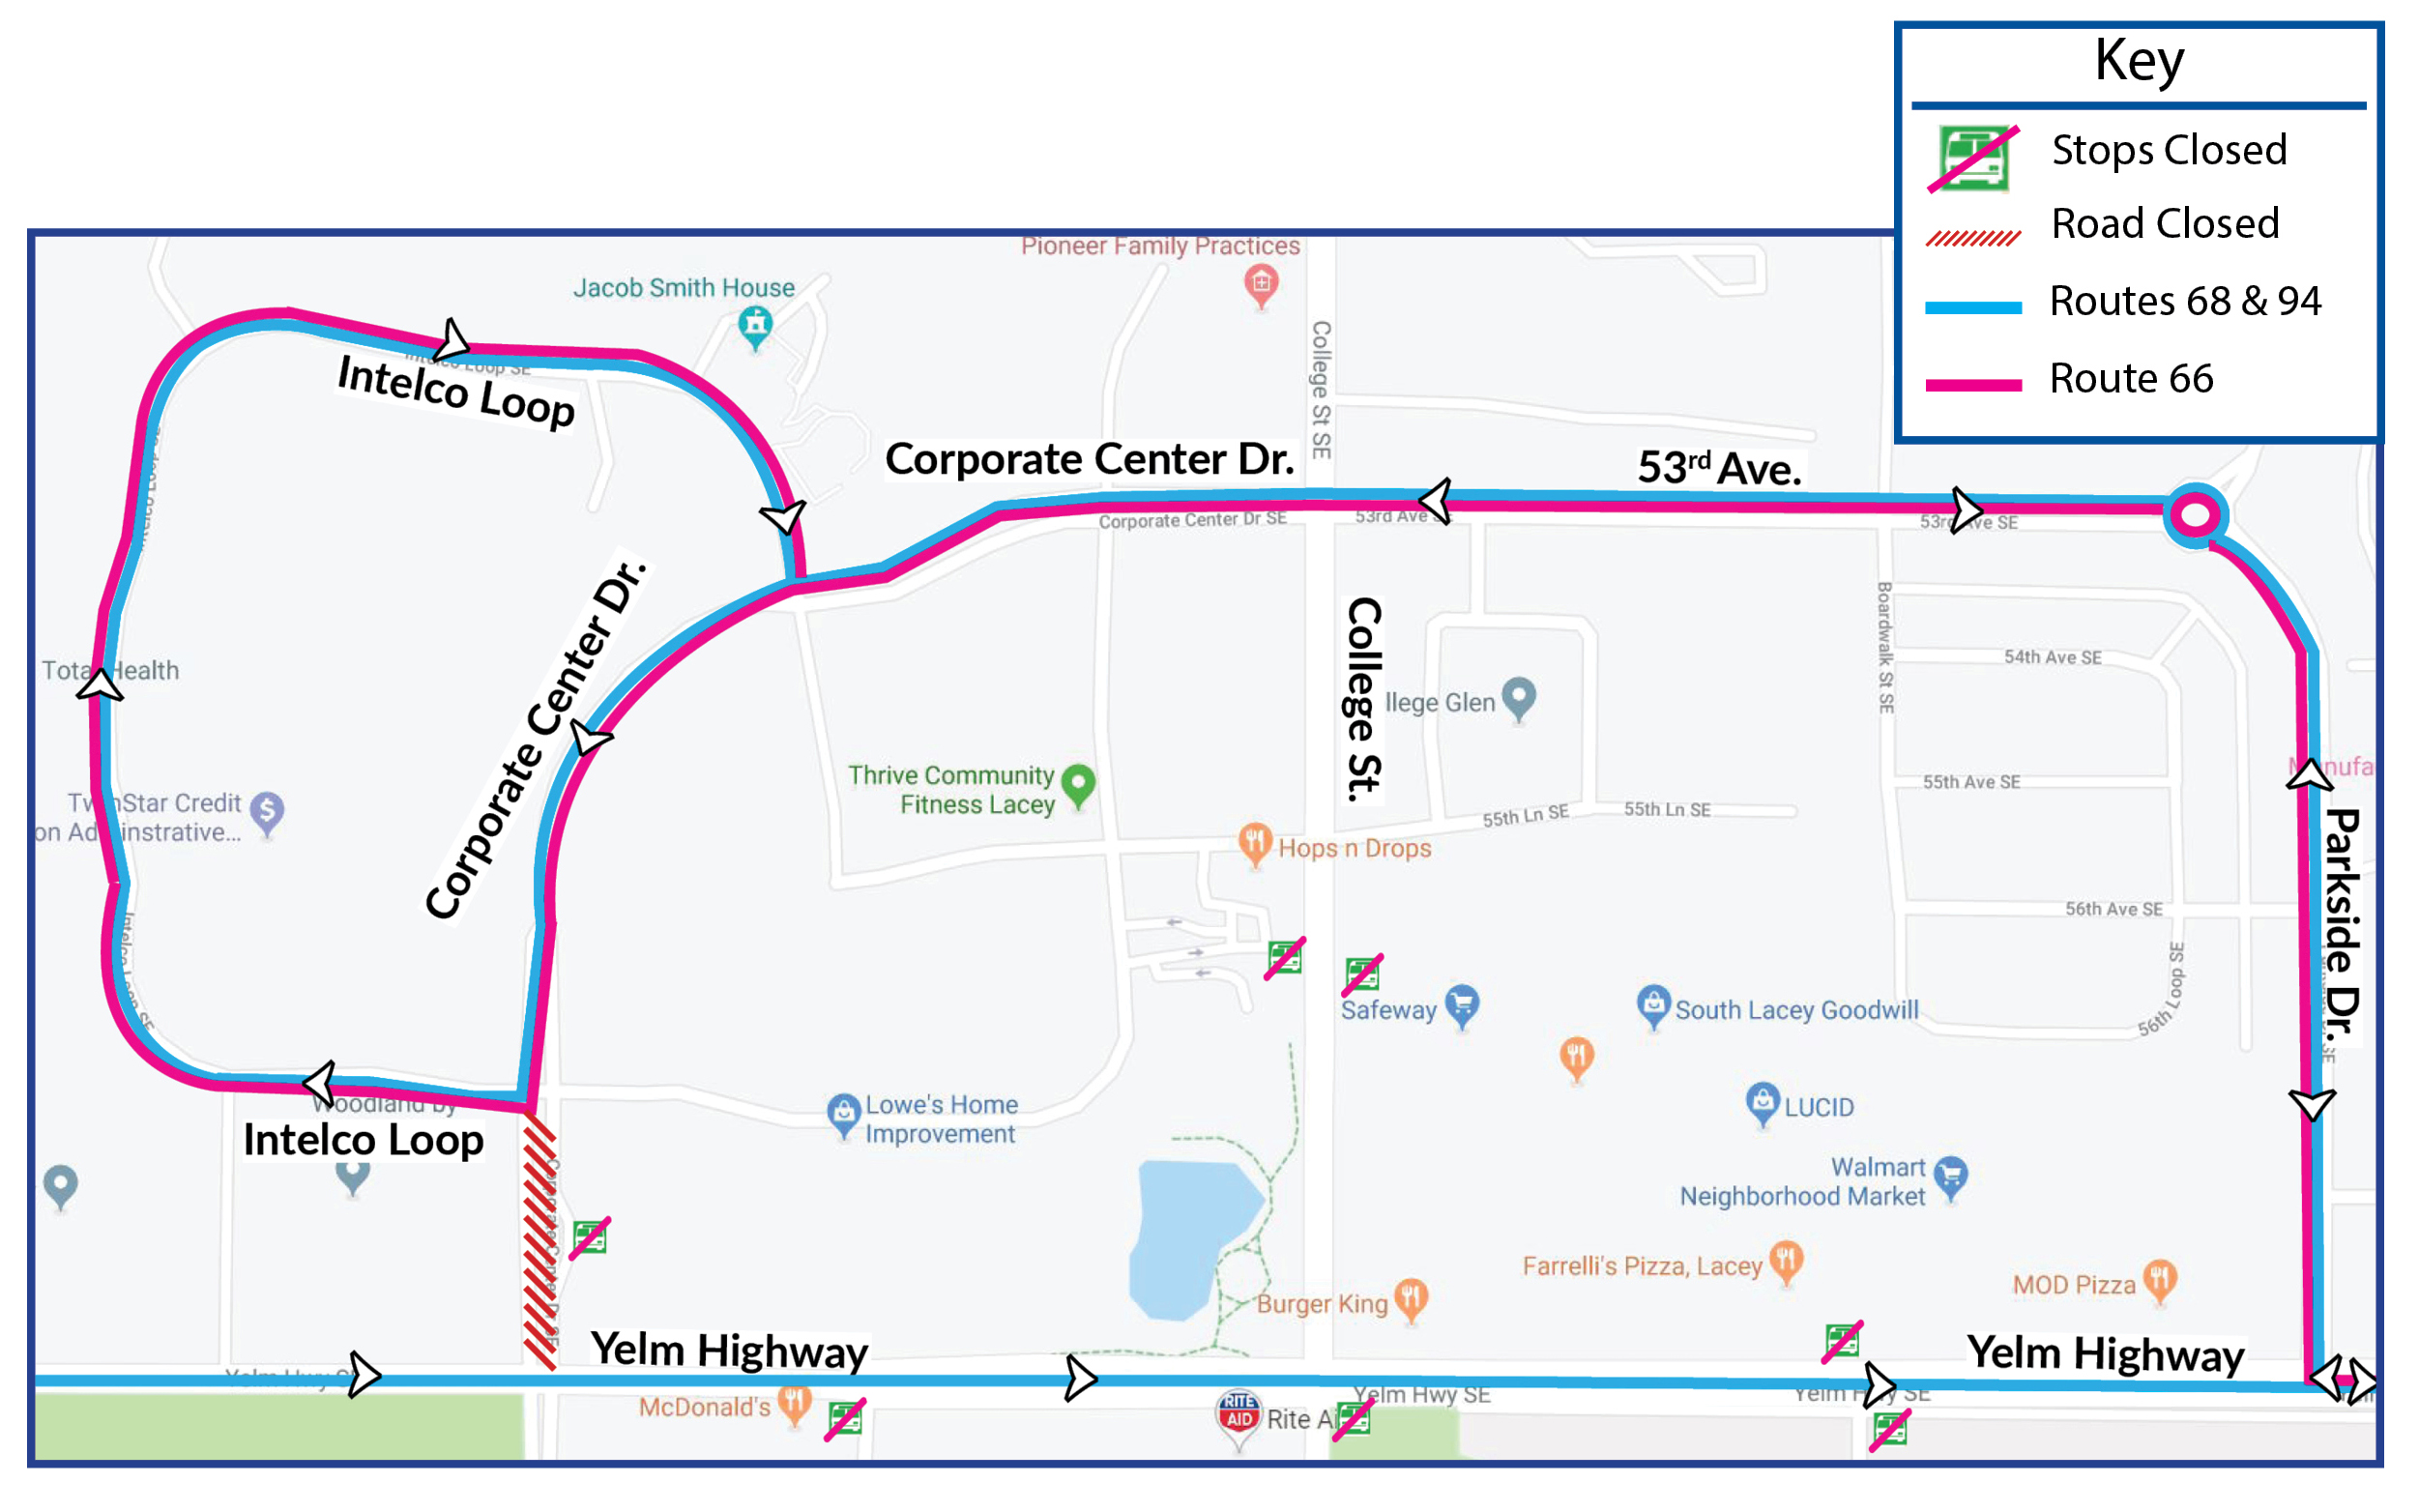 Routes 66, 68 and 94 on detour Sept  9 due to paving on Yelm